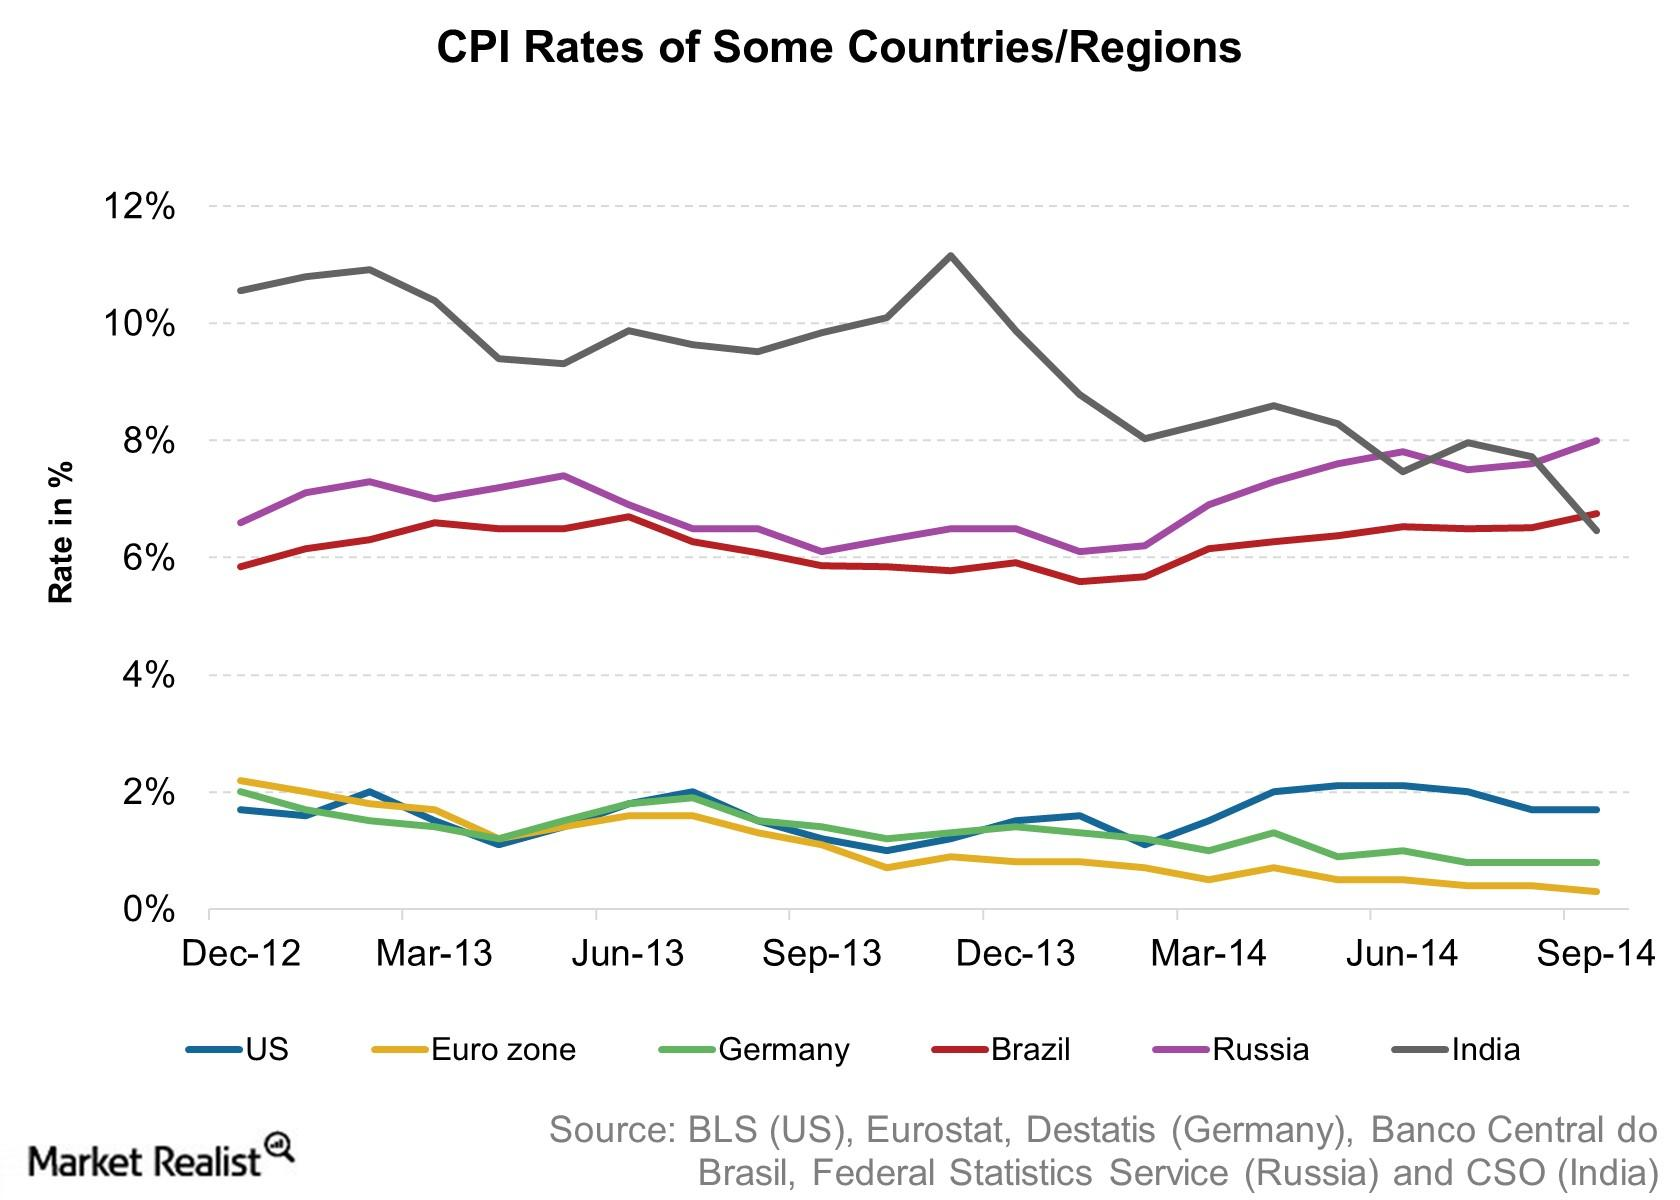 CPI Rates of Some Countries Regions